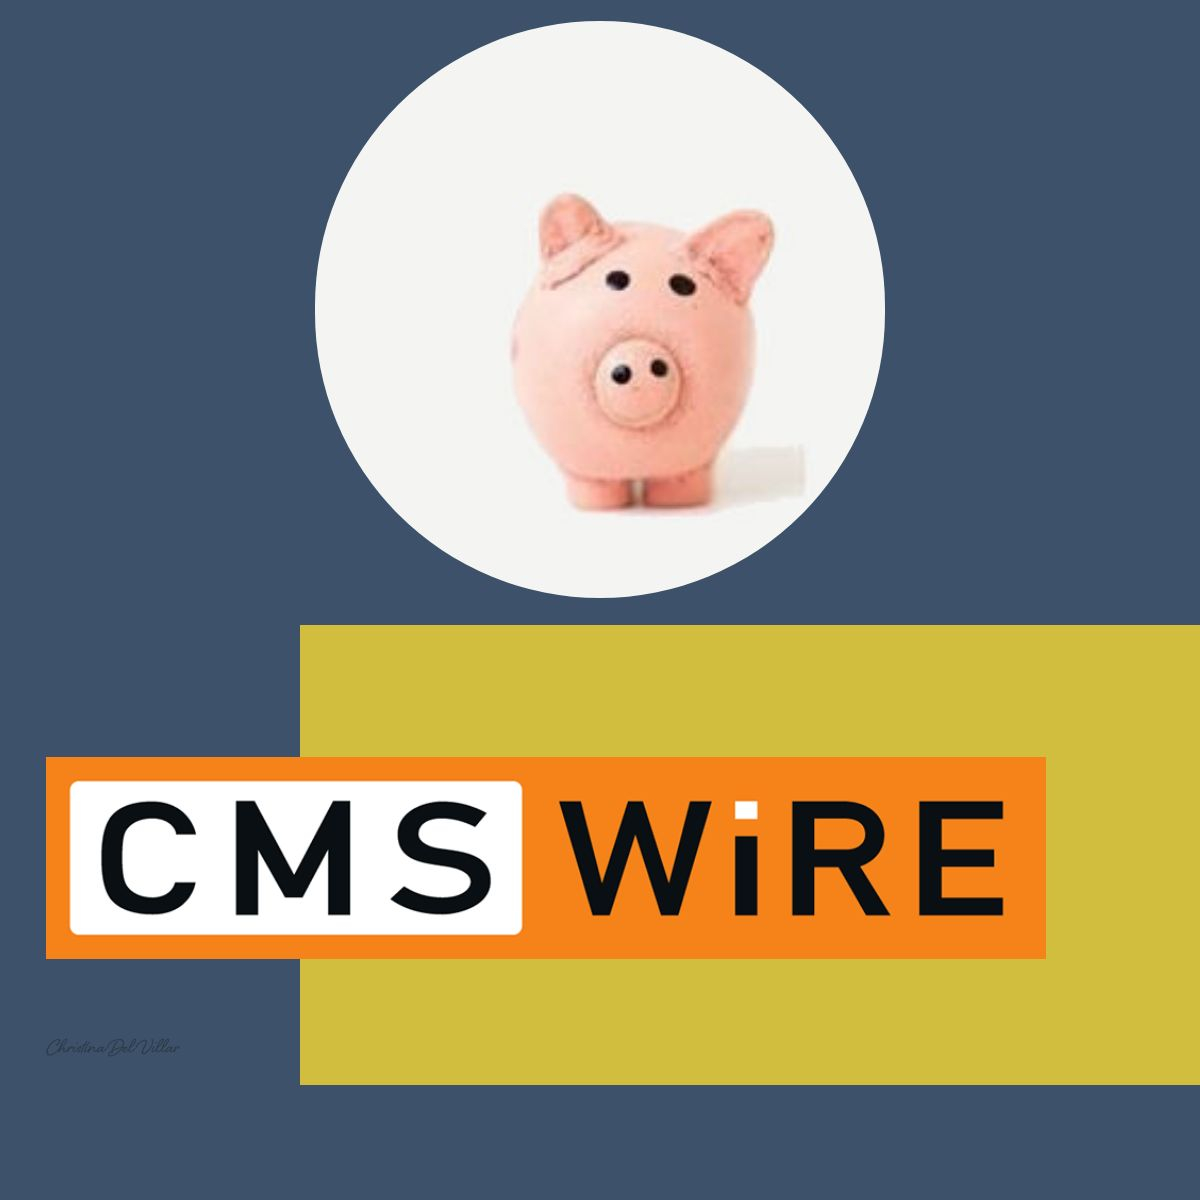 CMS wire contributing author